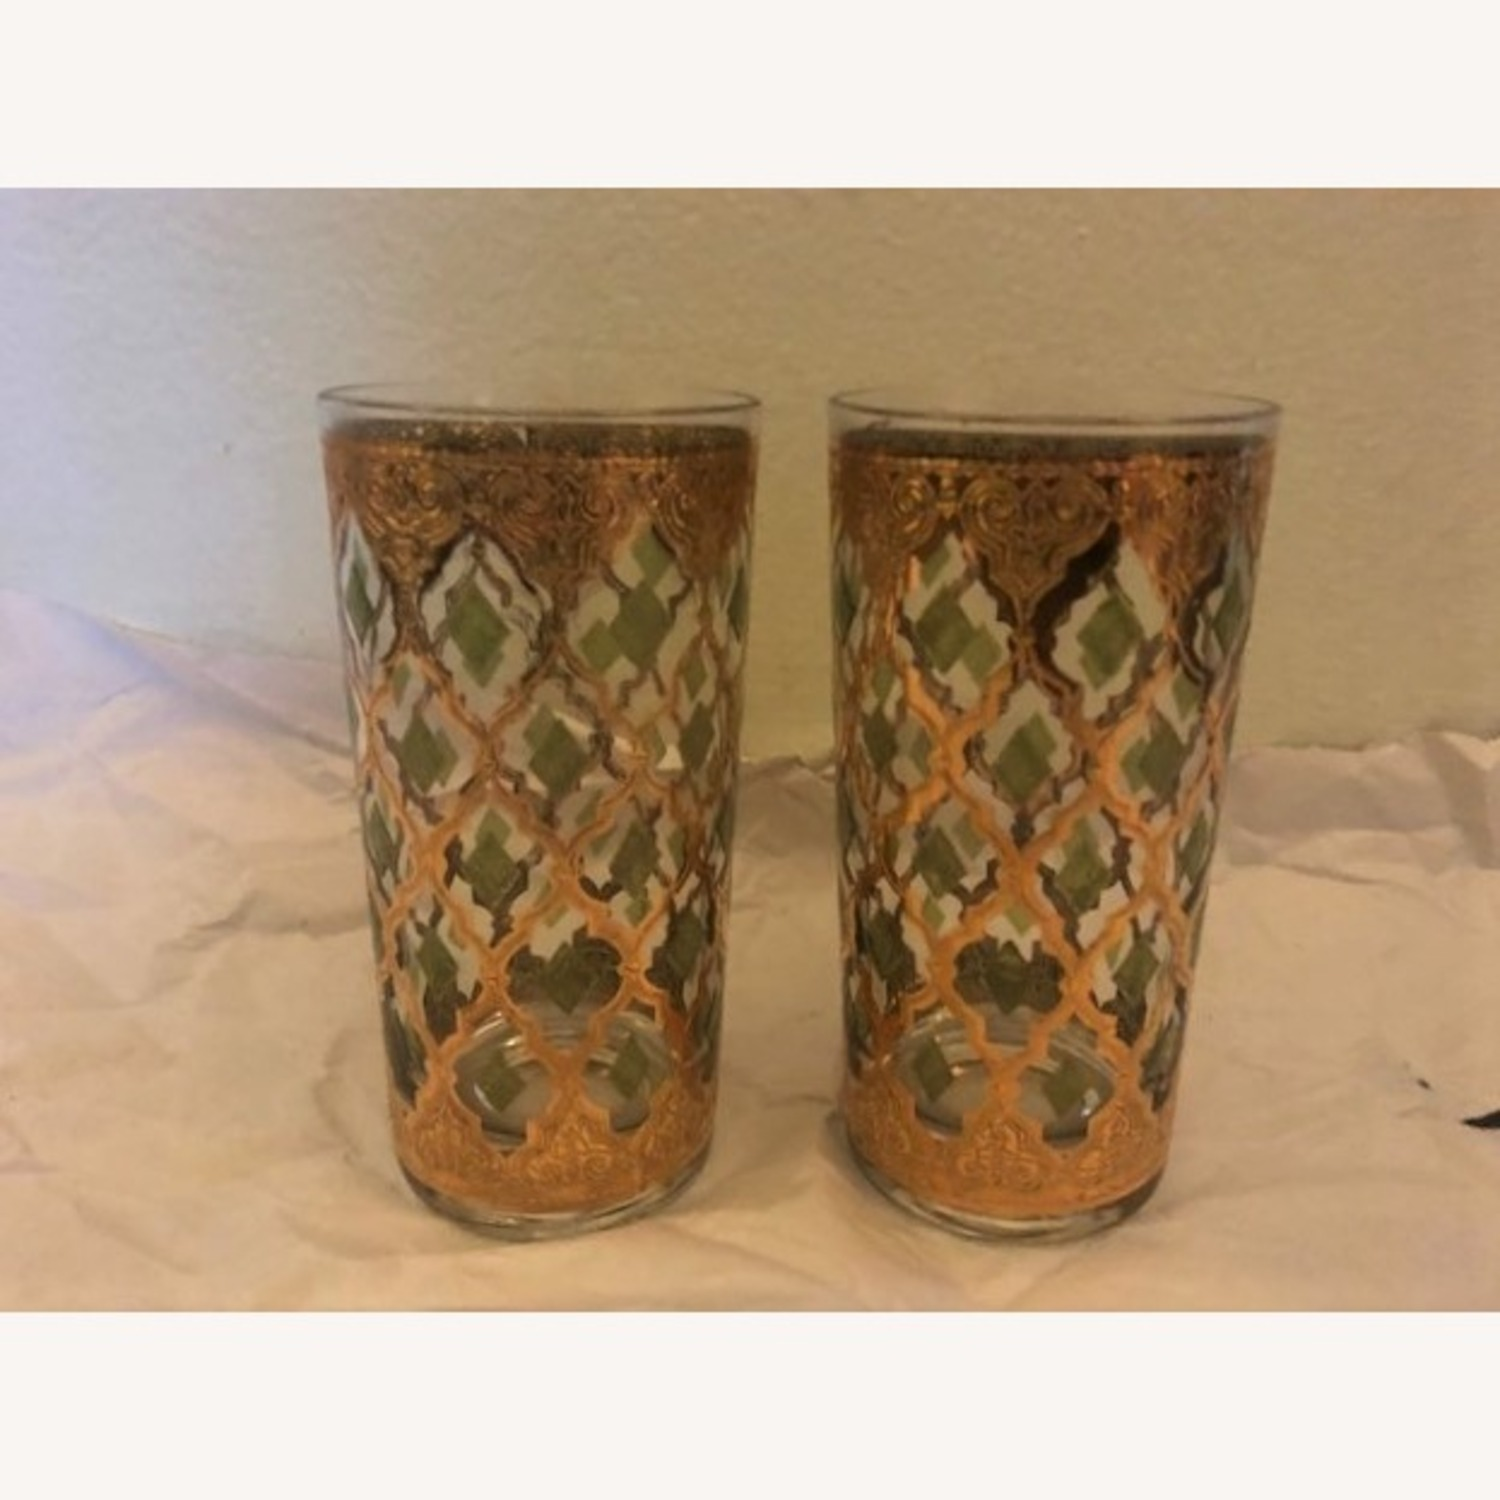 Pair of Mid-Century Gold & Green Culver Glasses - image-1